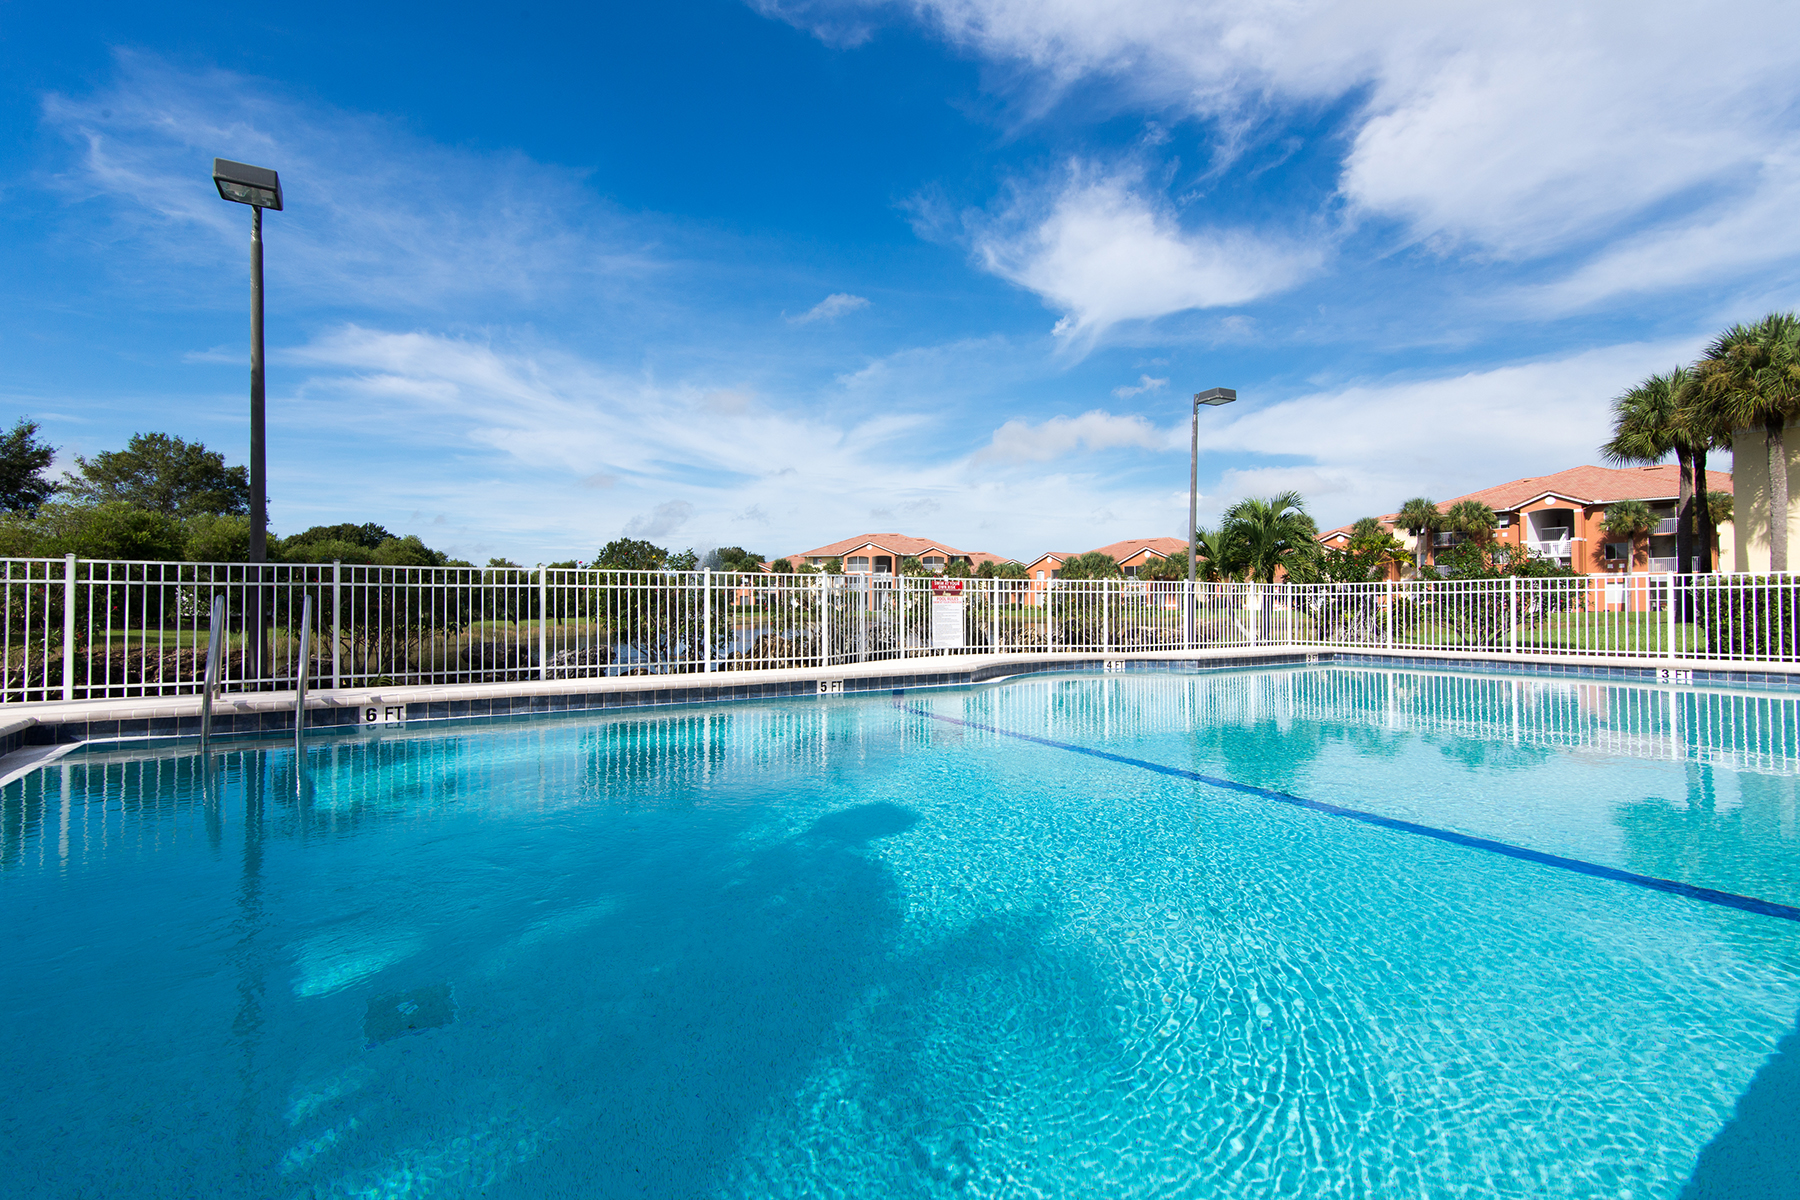 Condominium for Sale at TUSCANY GARDENS 6361 Aragon Way 104 Fort Myers, Florida 33966 United States